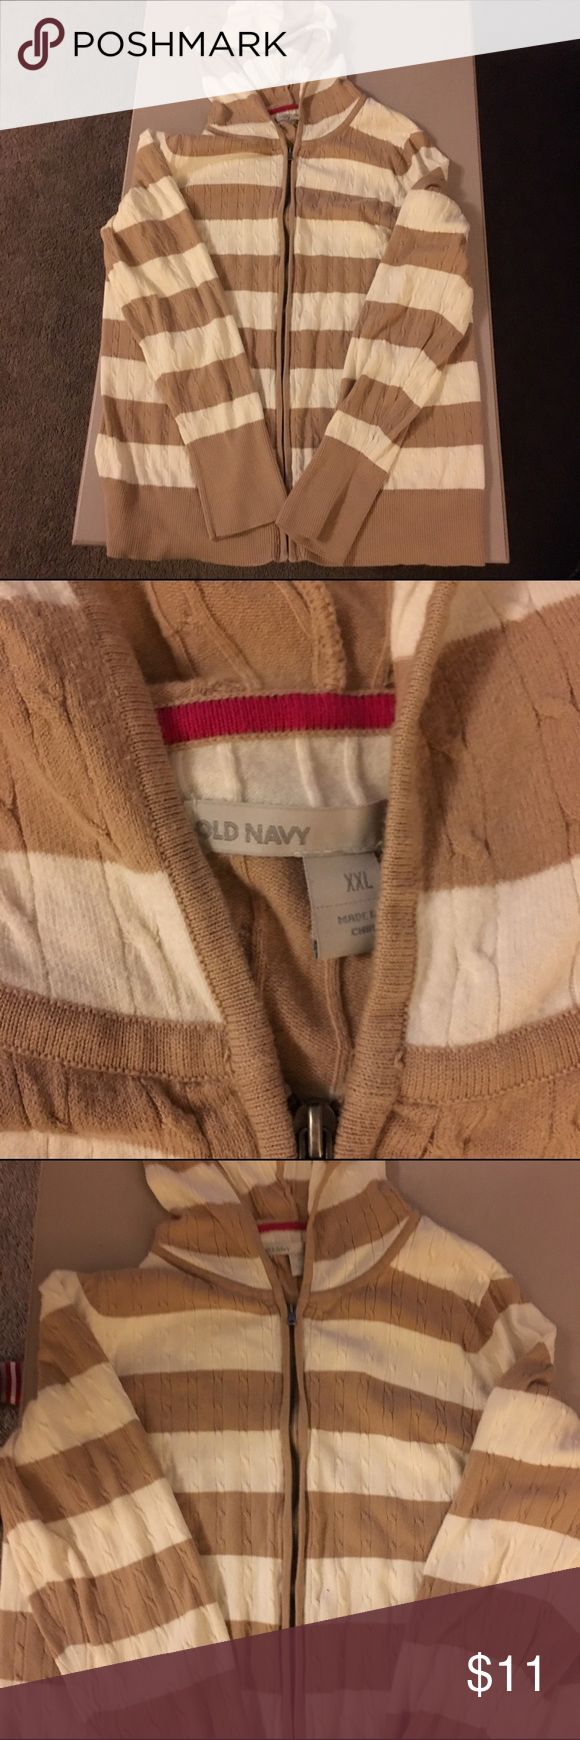 Old Navy XXL zip up sweater Old Navy XXL zip up tan and cream stripes, hooded, super cute and cozy. Sfpf home Very good preowned condition. Old Navy Sweaters